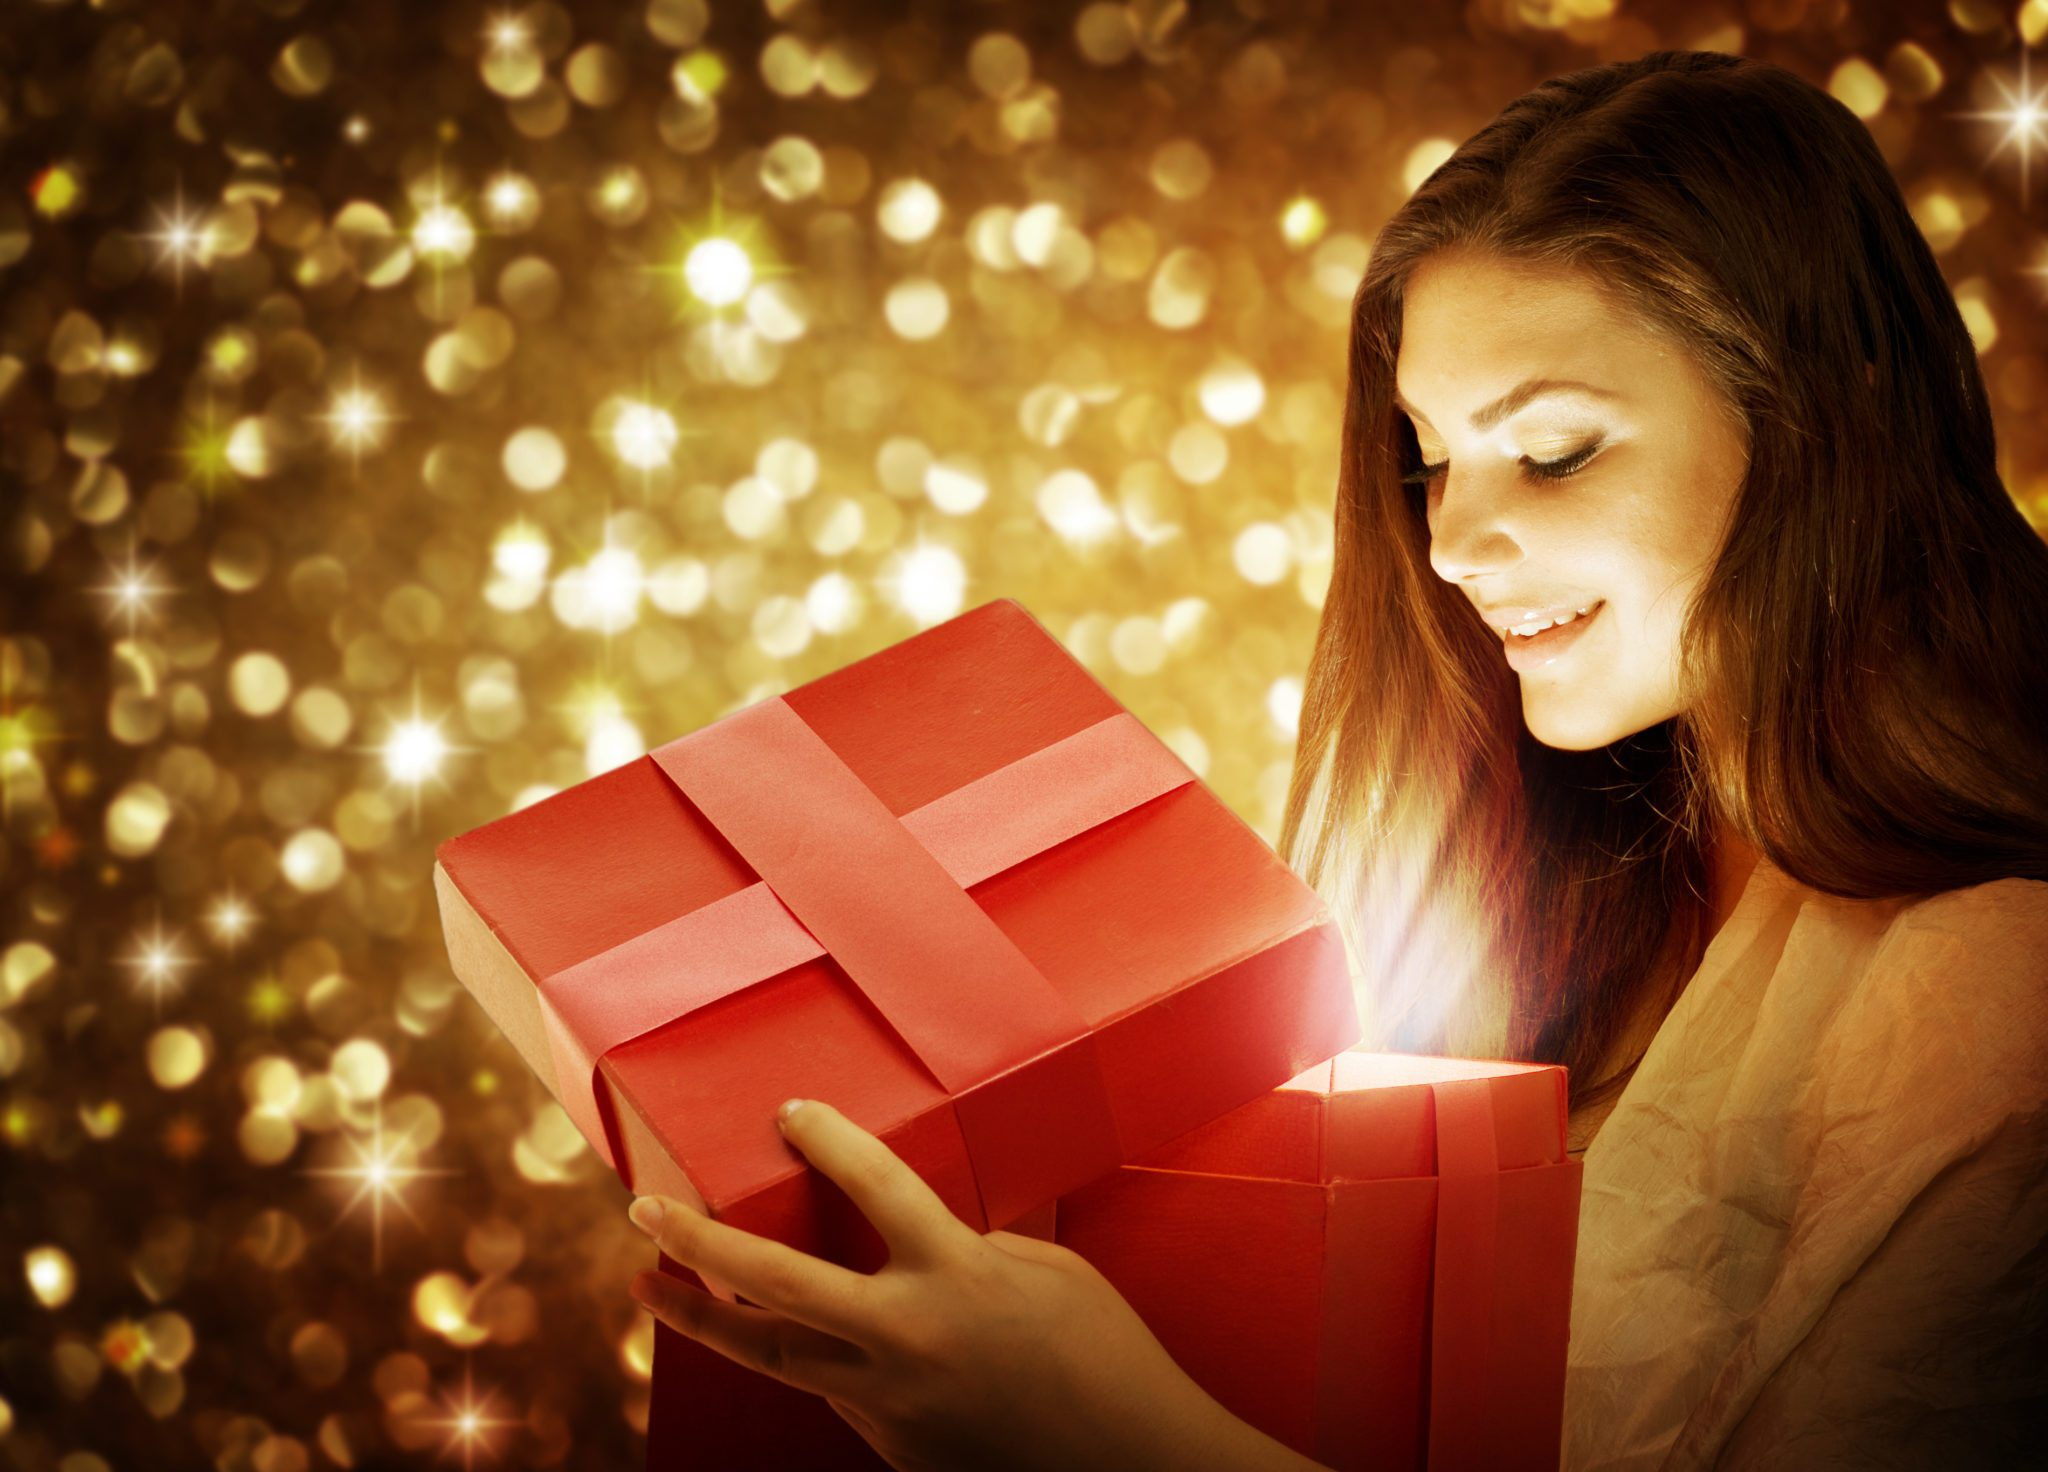 Christmas bonus marriage gift AdobeStock_27979881 copy